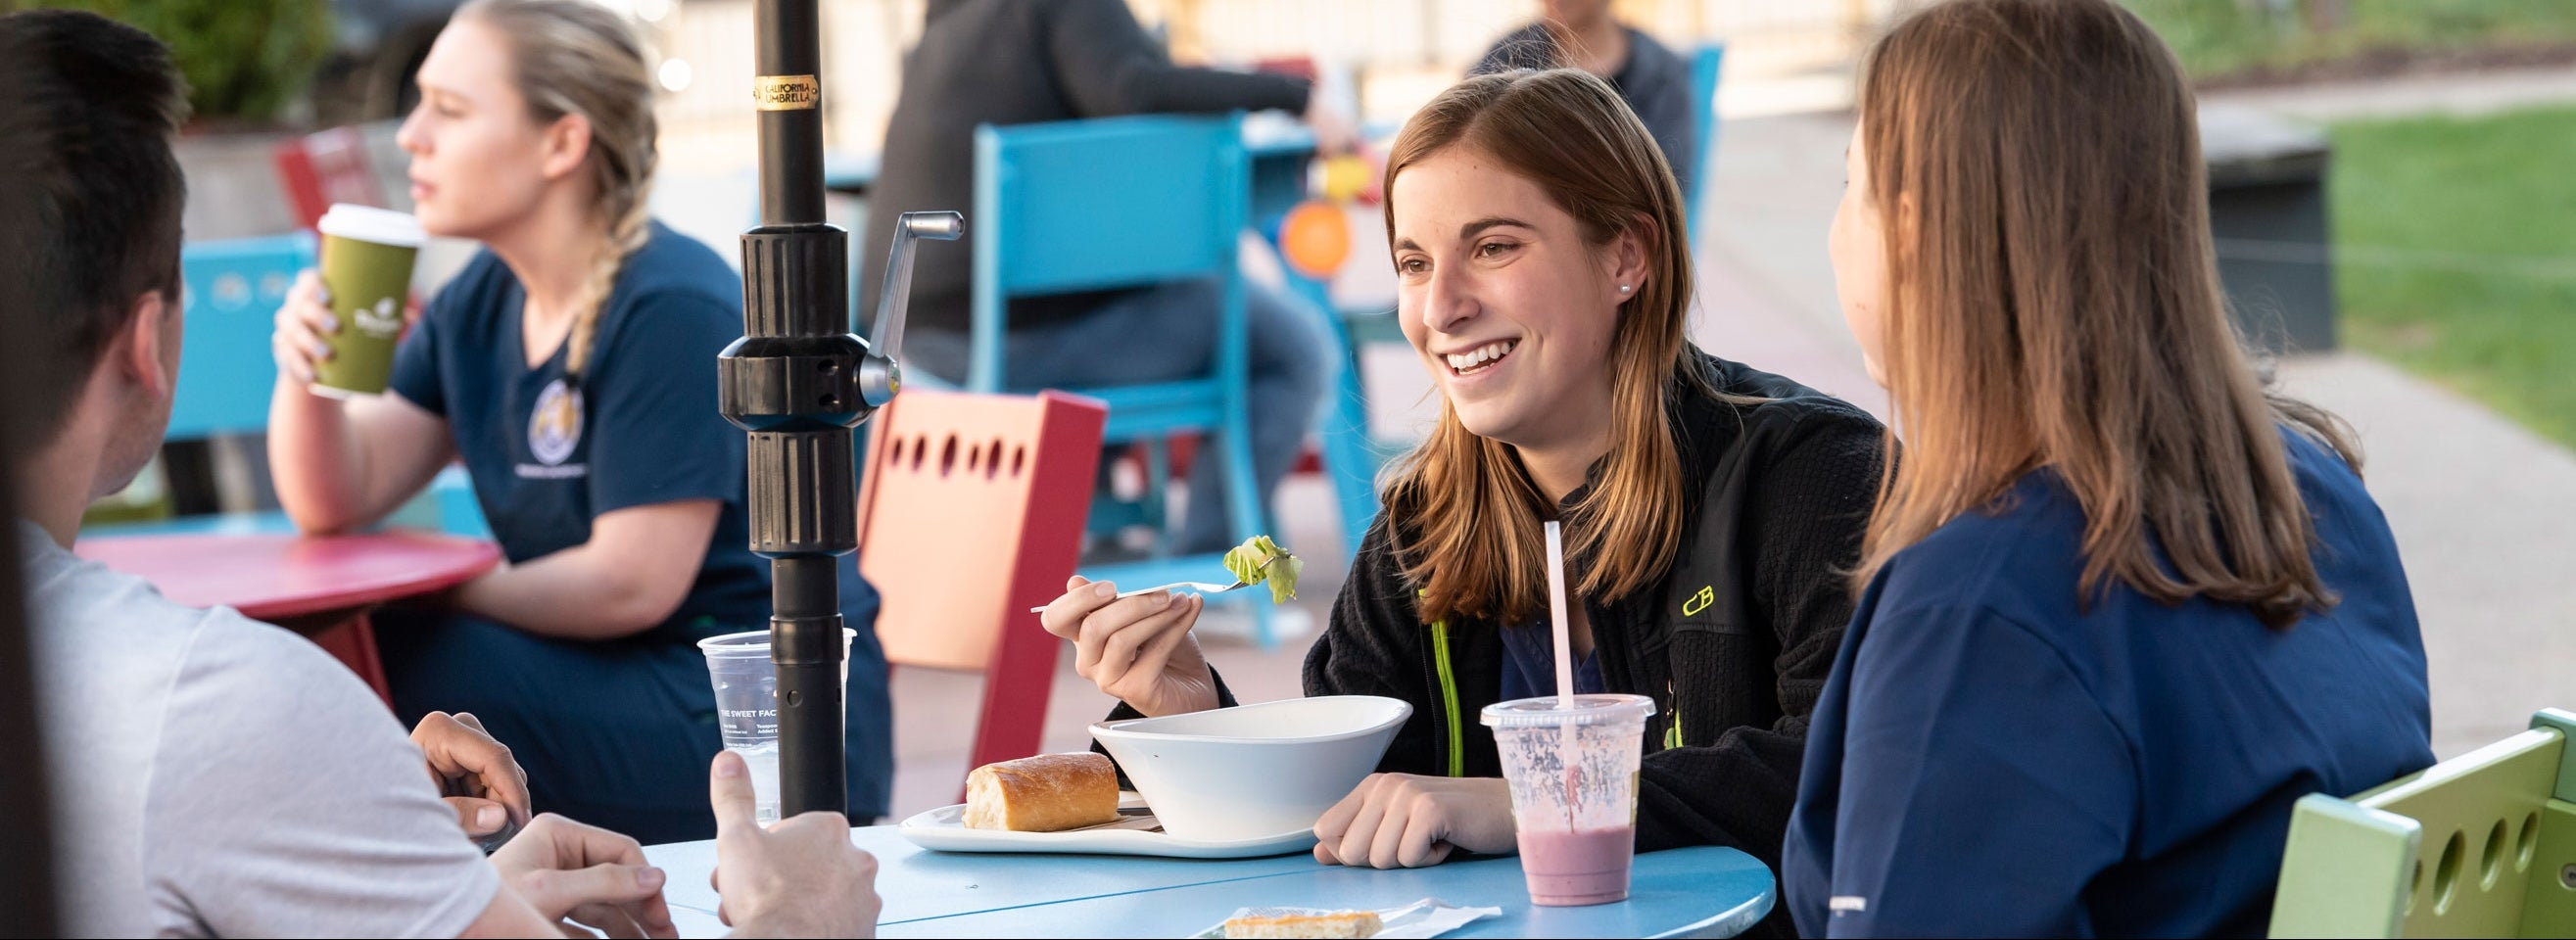 A woman eats a meal while dining outdoors with friends